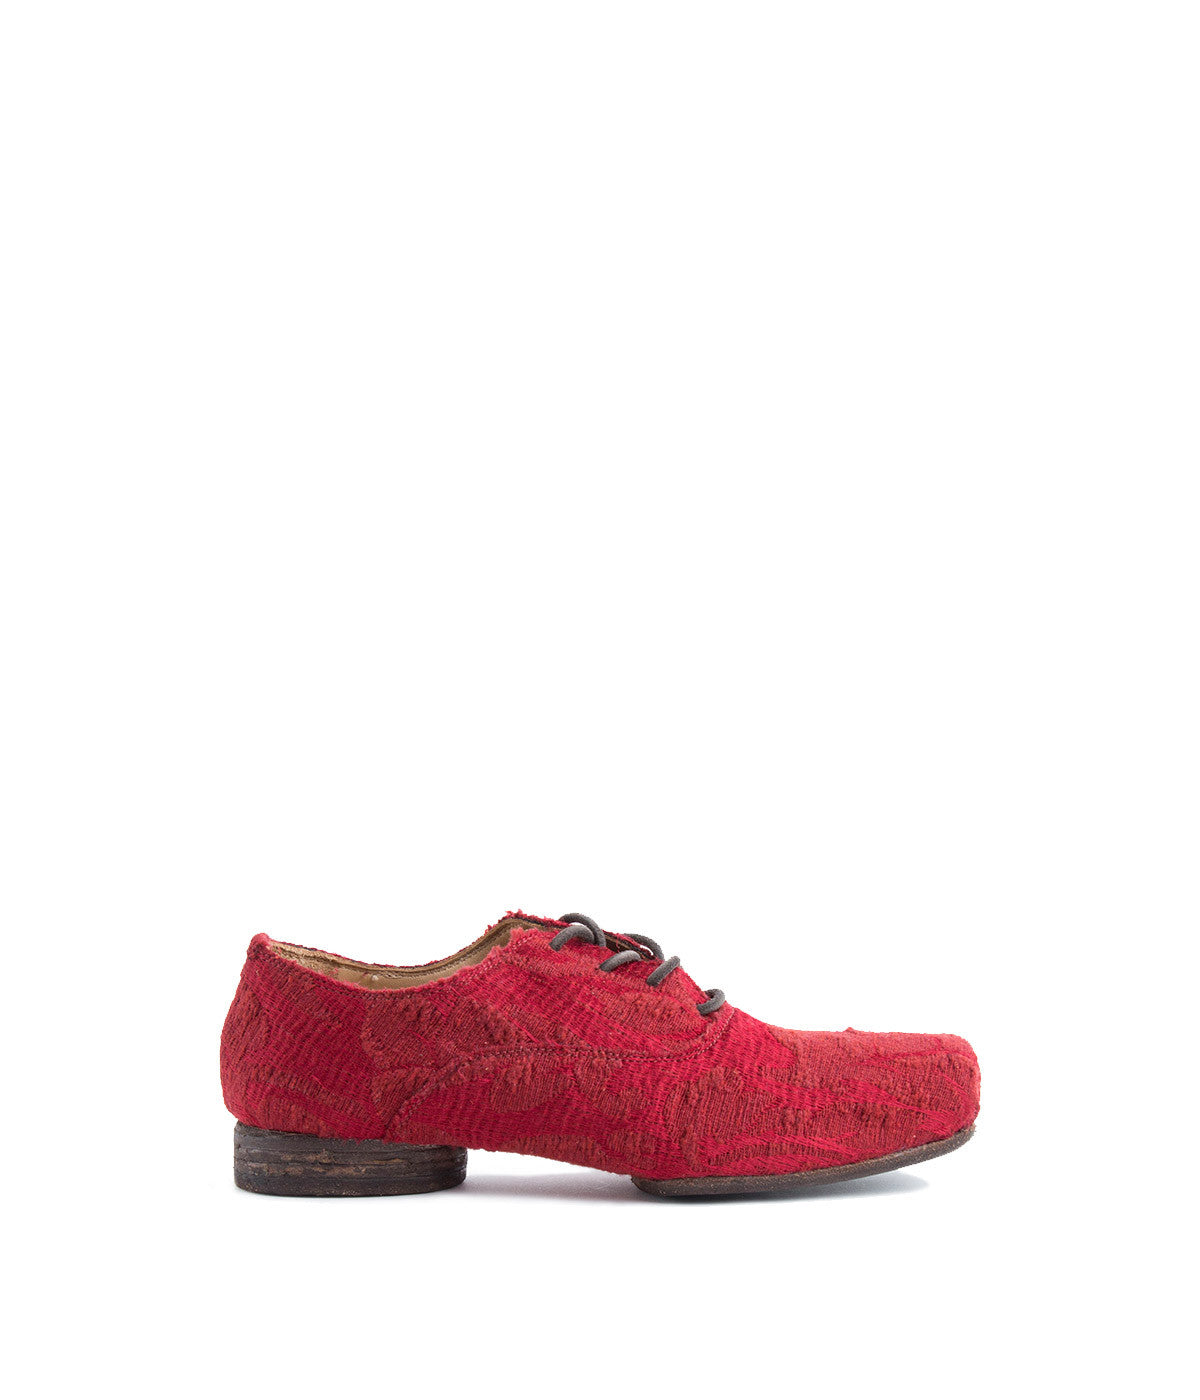 Red Francesina Flat Shoes